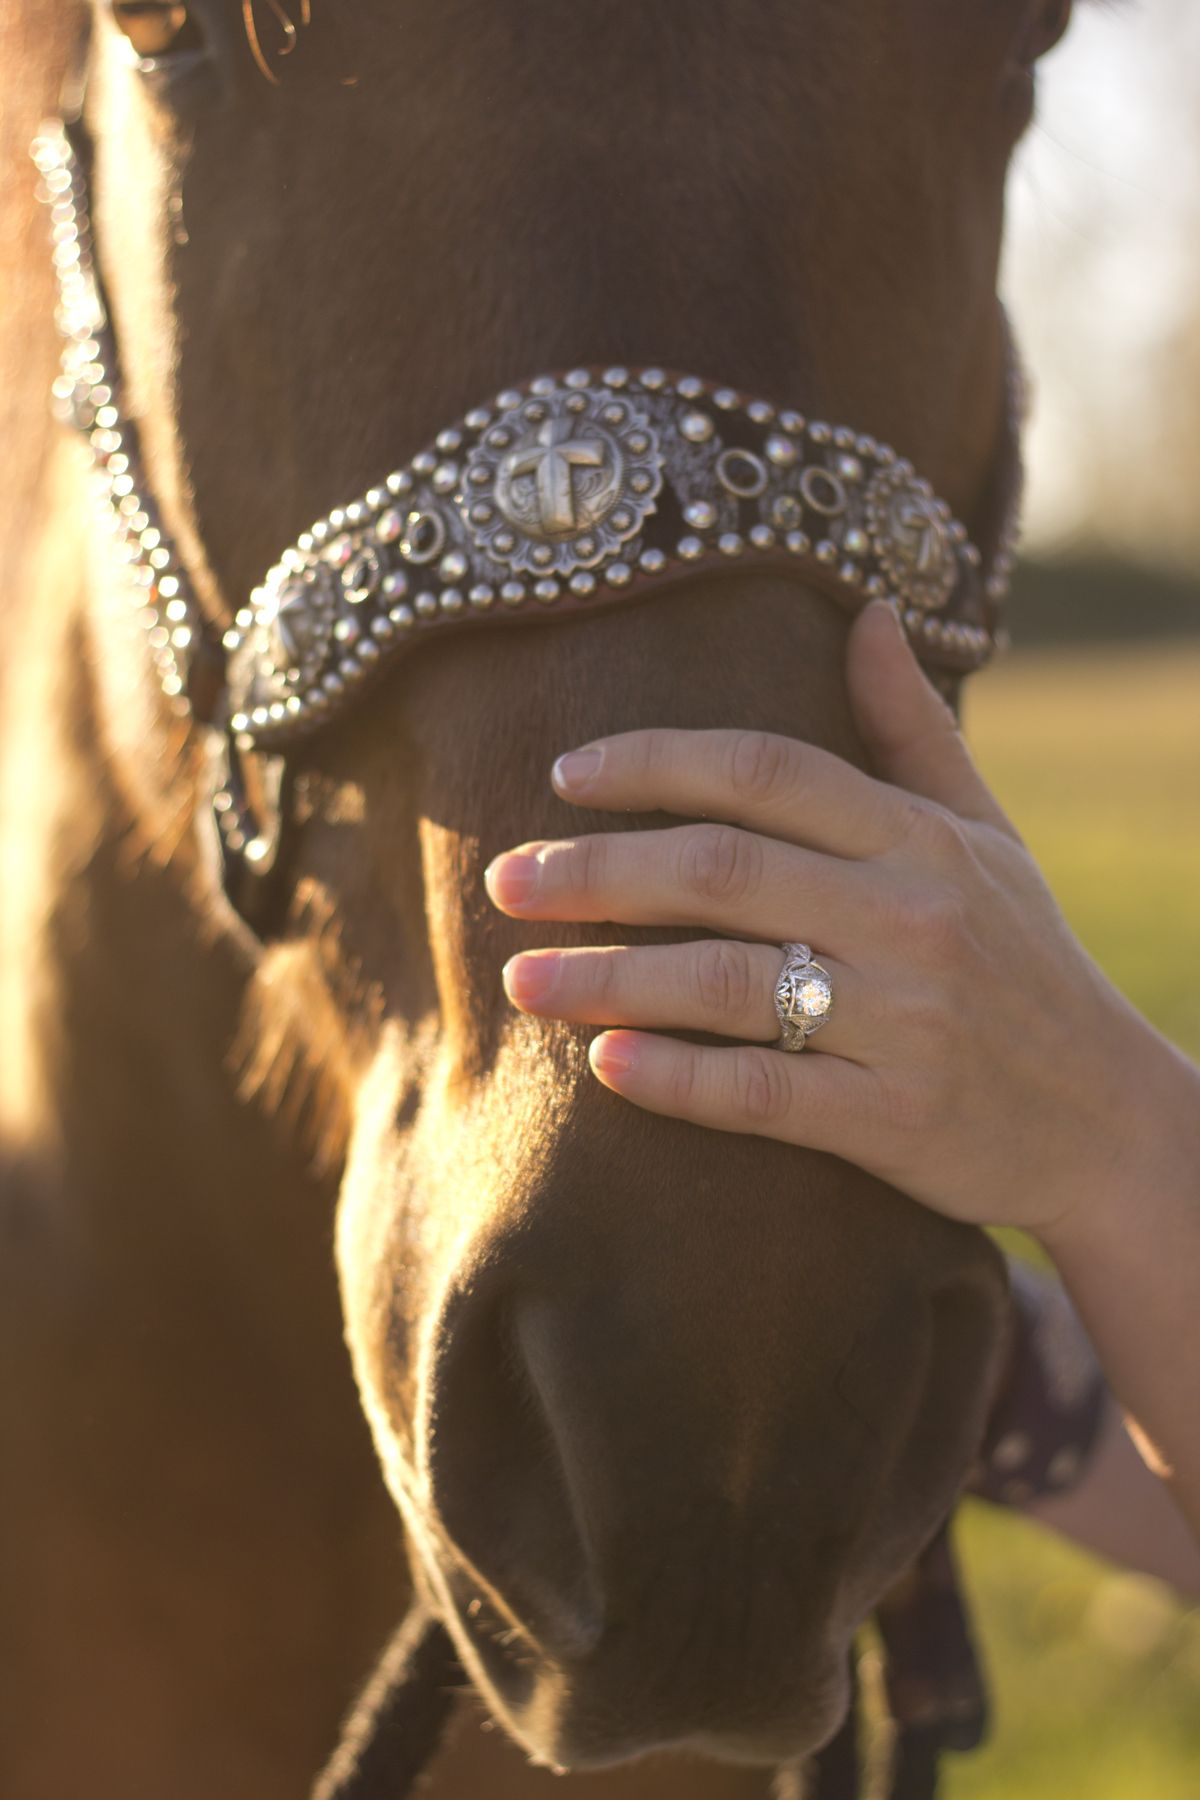 This is supposed to show off the ring but i LOVE this halter! where can i buy this halter!!!